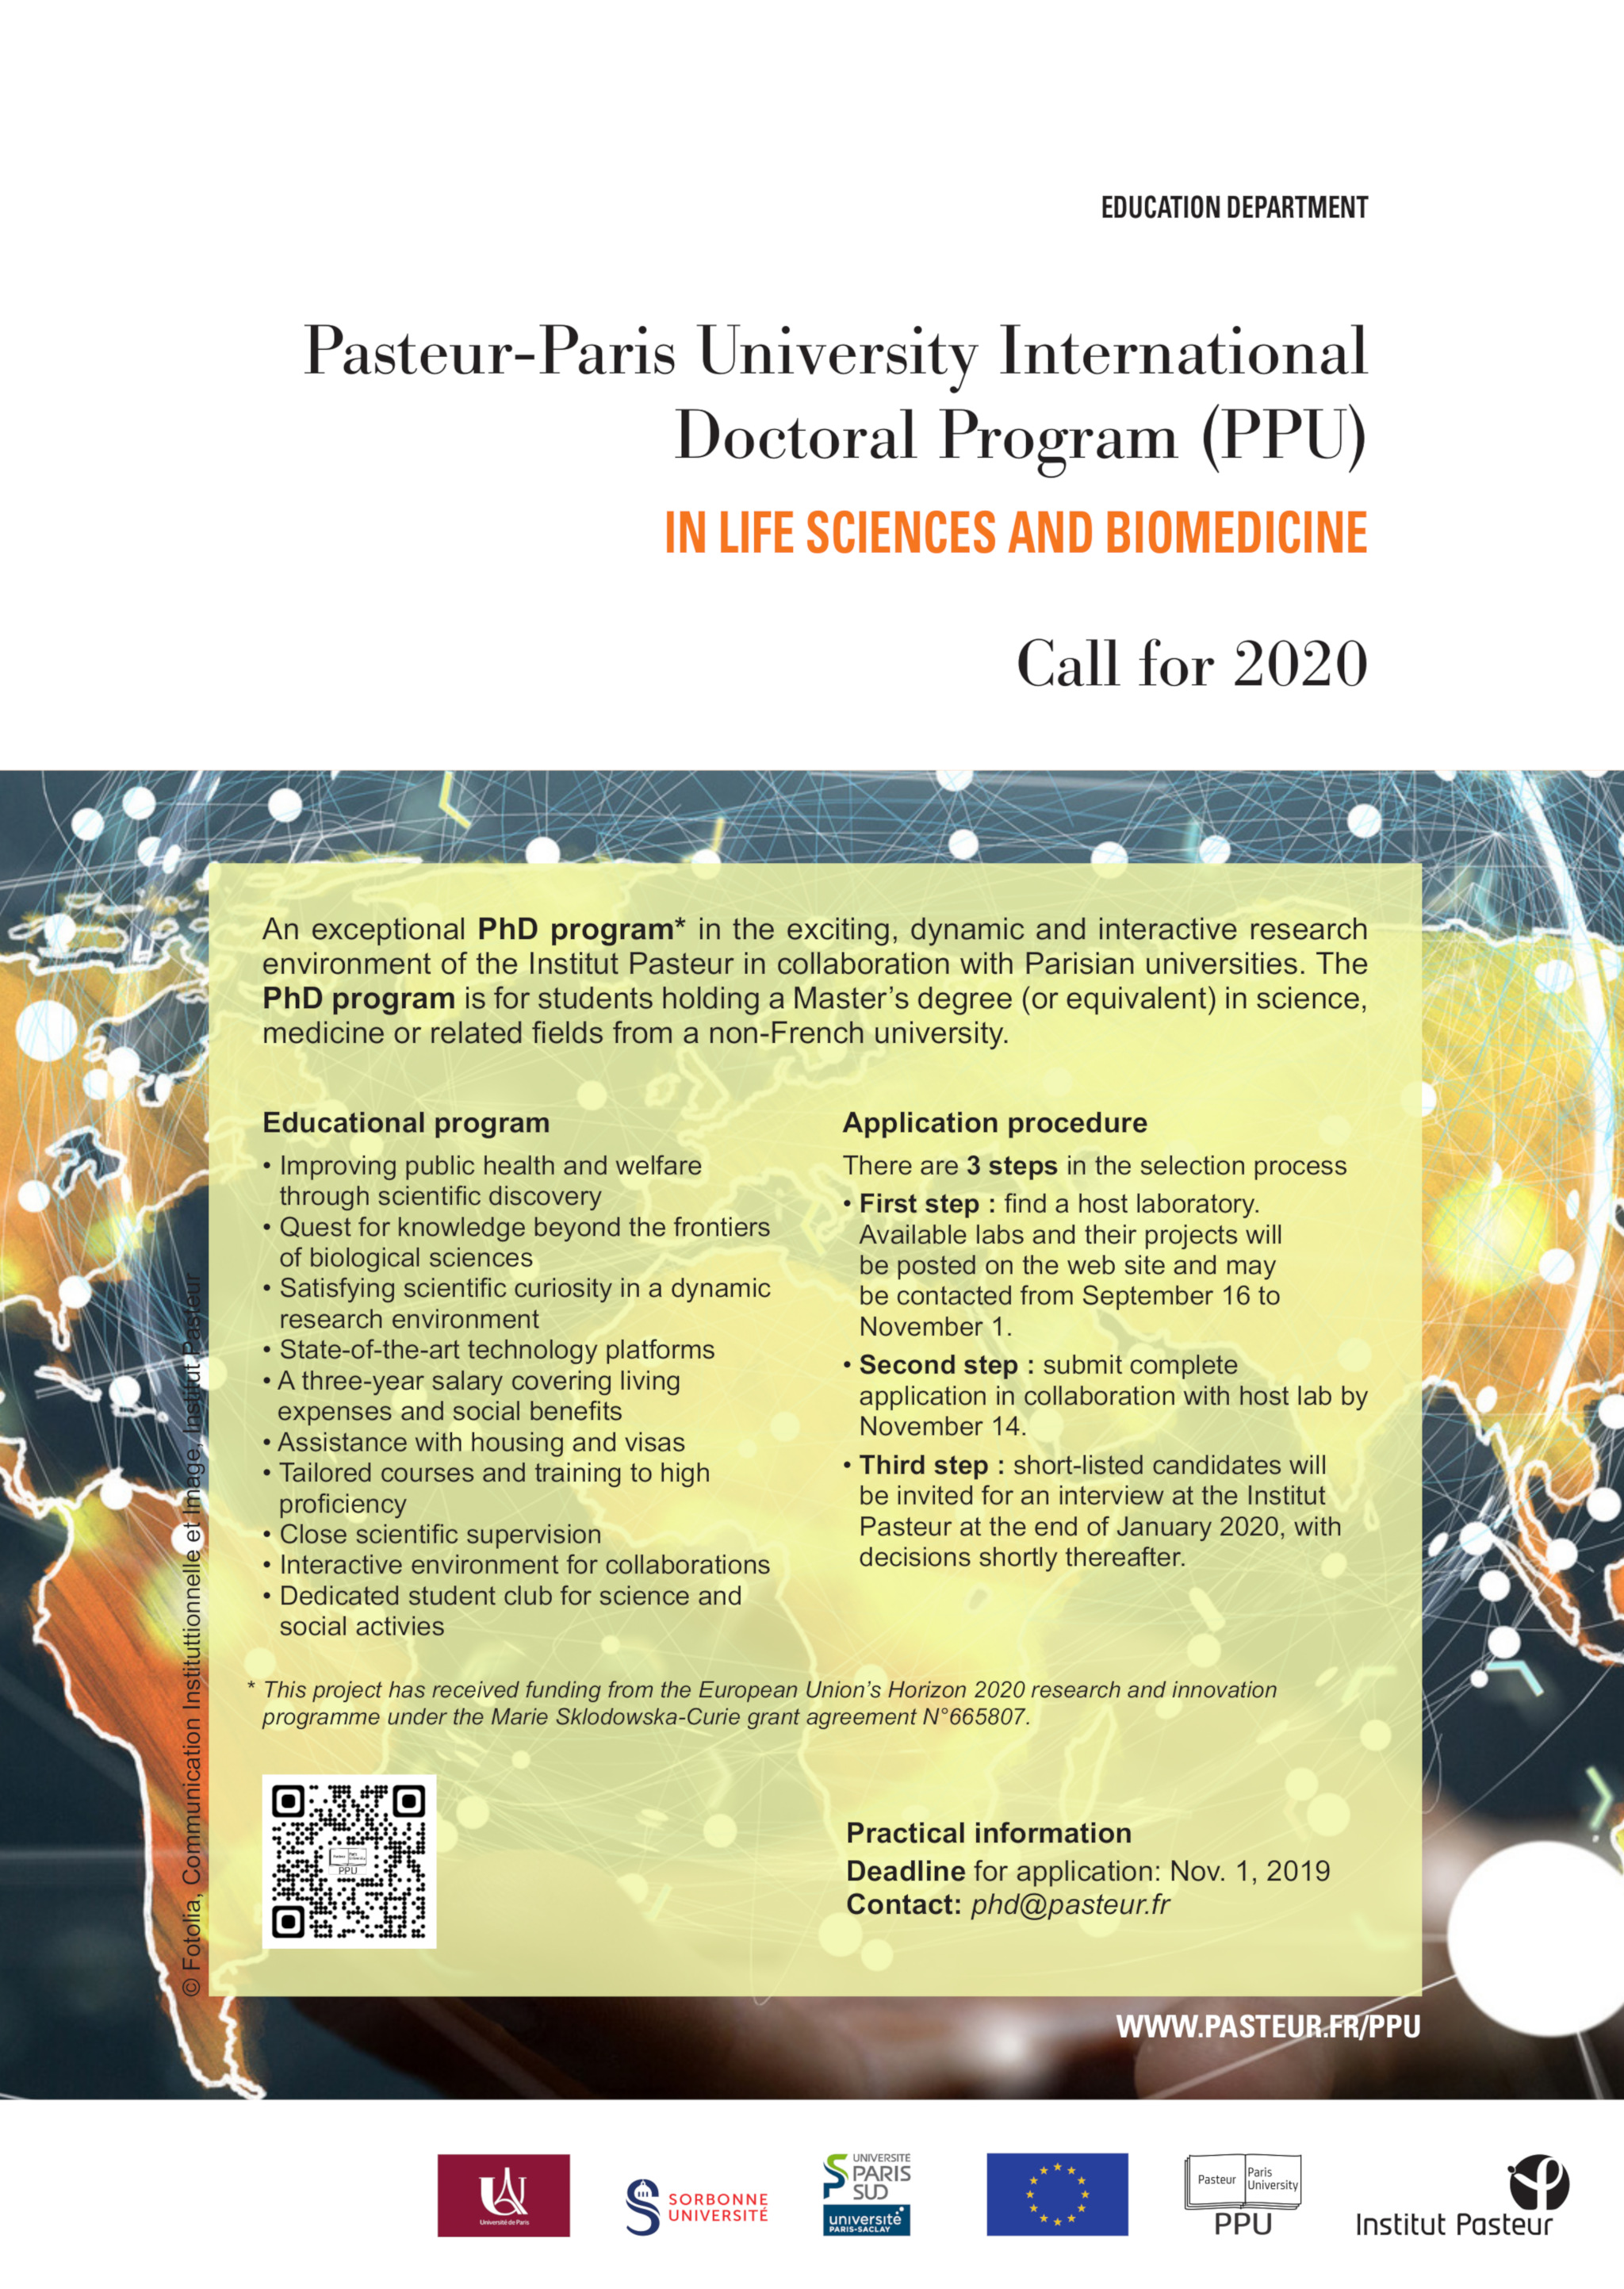 2020 Call: PhD scholarships for the Pasteur-Paris University International Doctoral Program (medical and biological sciences)